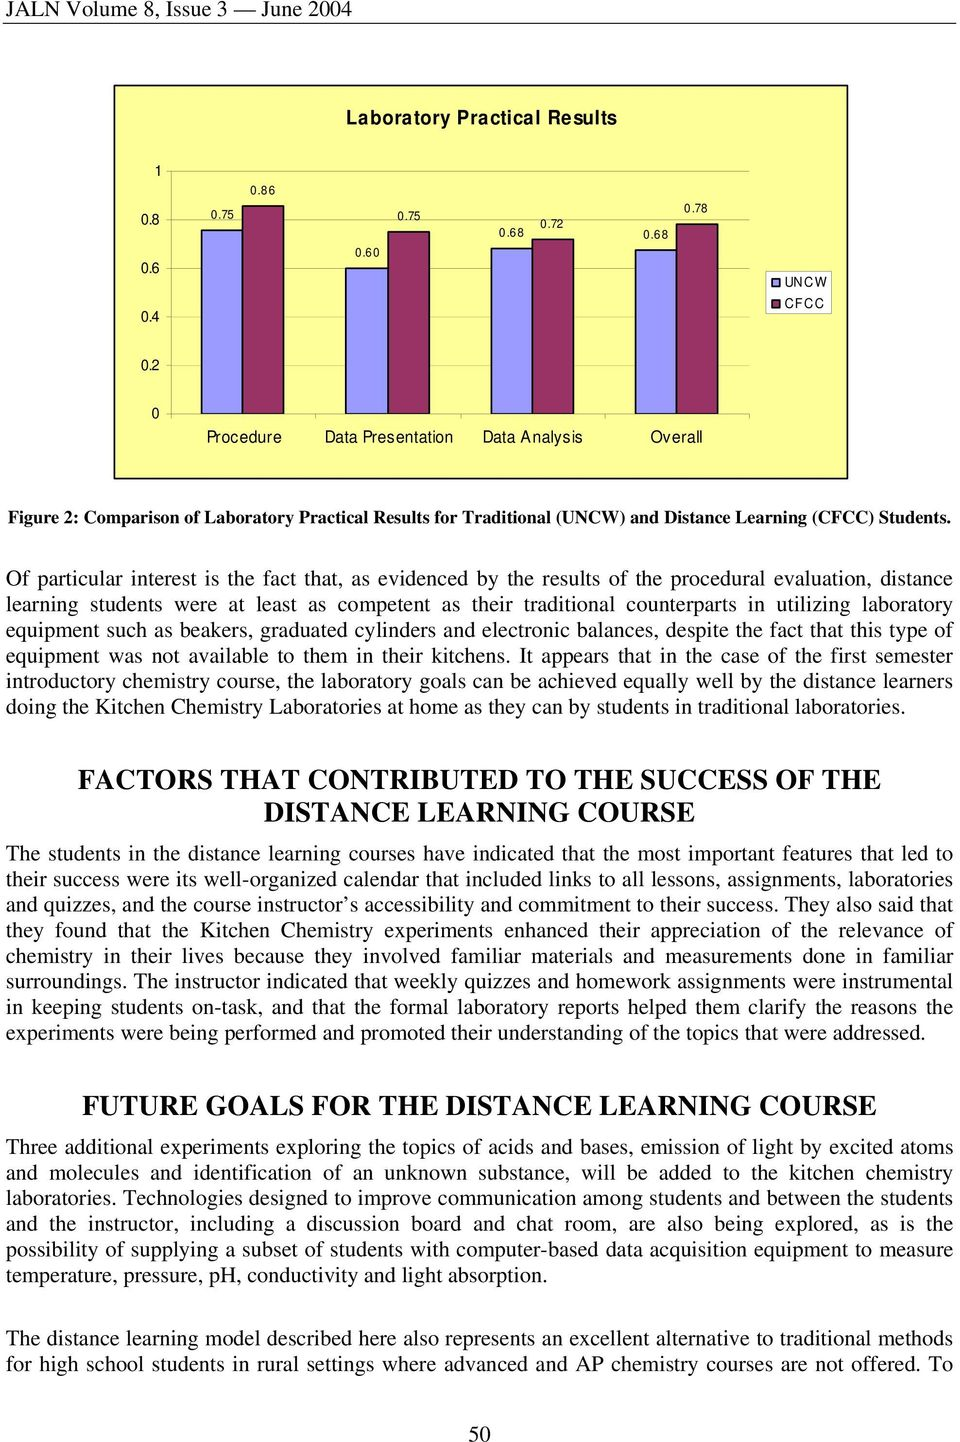 Of particular interest is the fact that, as evidenced by the results of the procedural evaluation, distance learning students were at least as competent as their traditional counterparts in utilizing